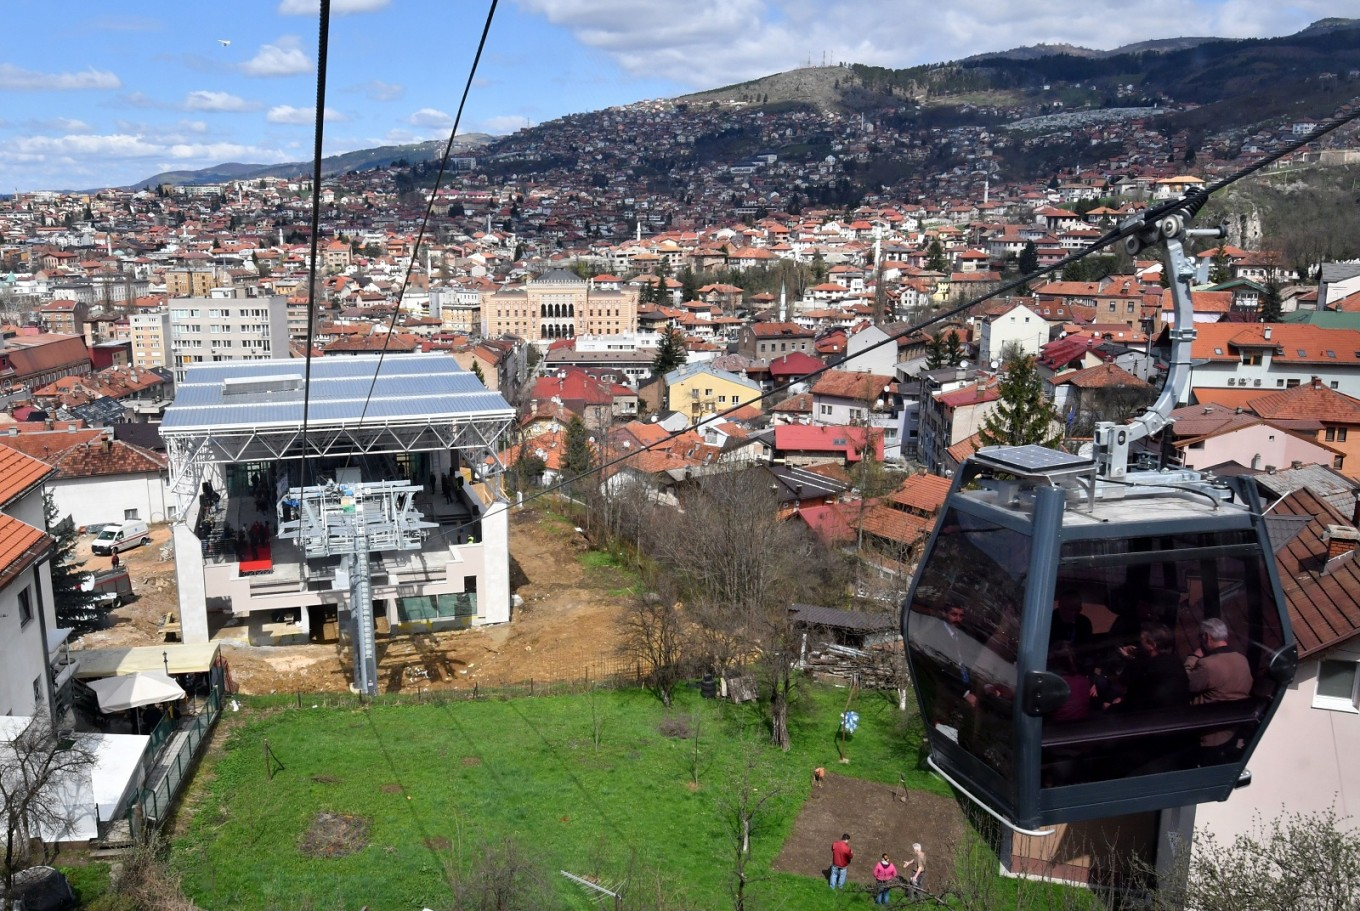 sarajevo cable car reopens 26 years after siege start news the jakarta post. Black Bedroom Furniture Sets. Home Design Ideas